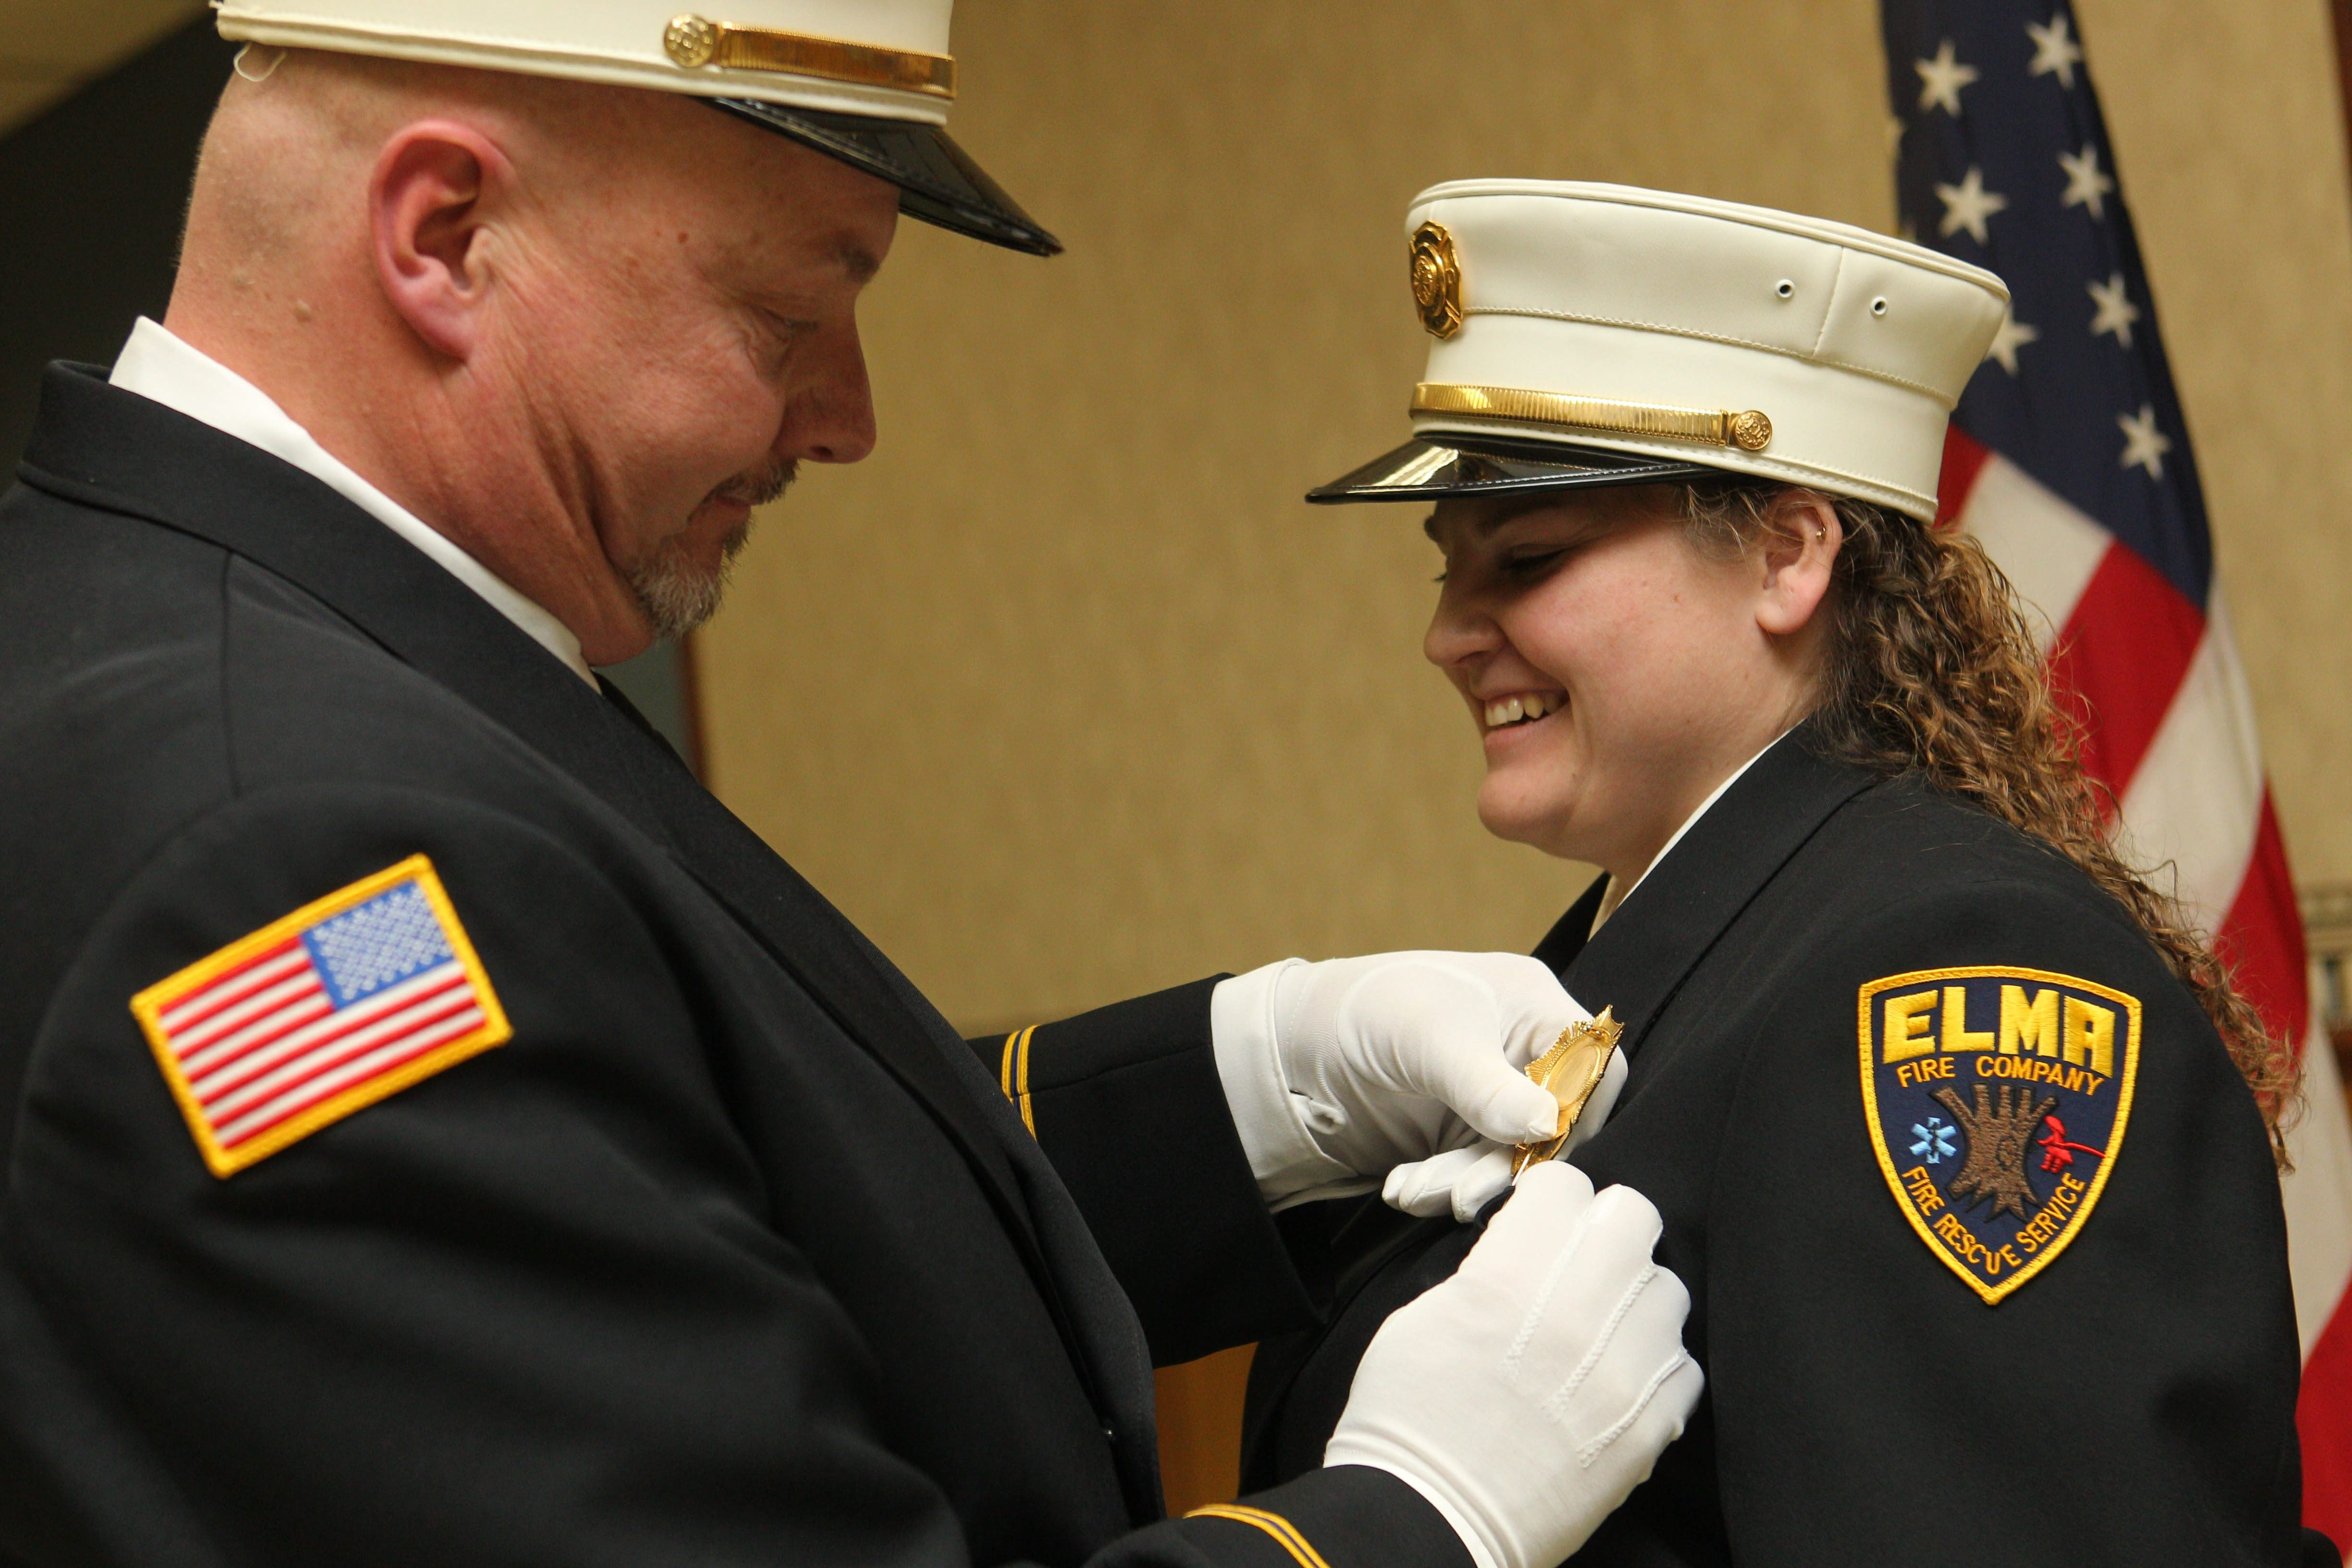 Outgoing Chief Mike Kalczynski pins a badge on Betsy Goinski after she took the oath of office Saturday to become the first woman chief of the Elma Volunteer Fire Company.